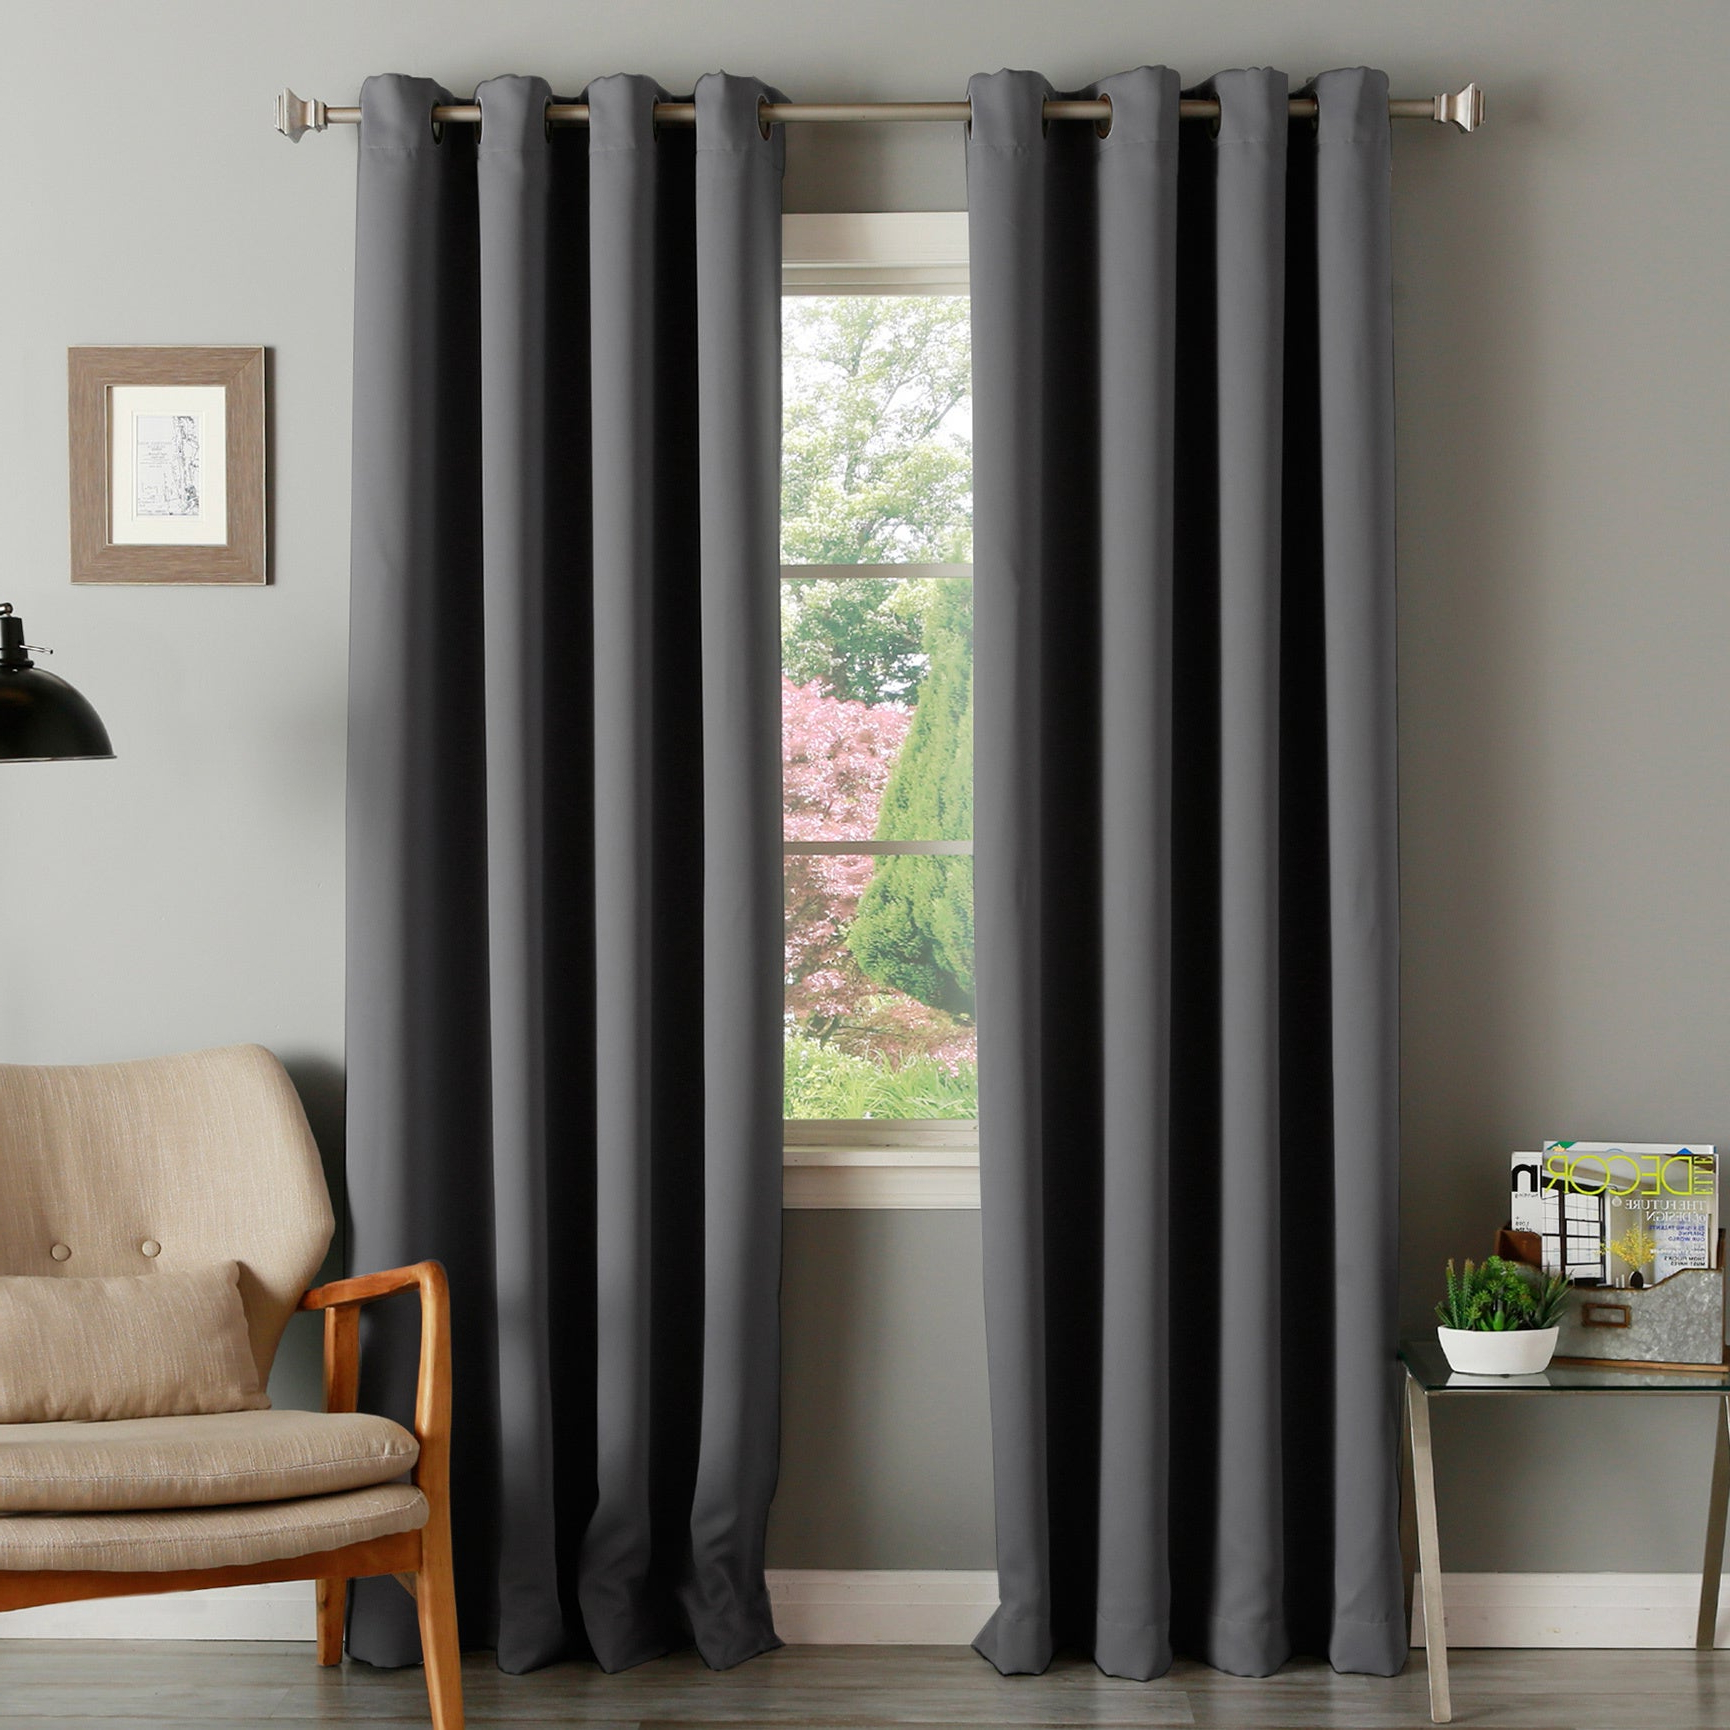 Most Up To Date Aurora Home Thermal Insulated Blackout Grommet Top 84 Inch Curtain Panel Pair – 52 X 84 Intended For Thermal Insulated Blackout Grommet Top Curtain Panel Pairs (View 10 of 20)